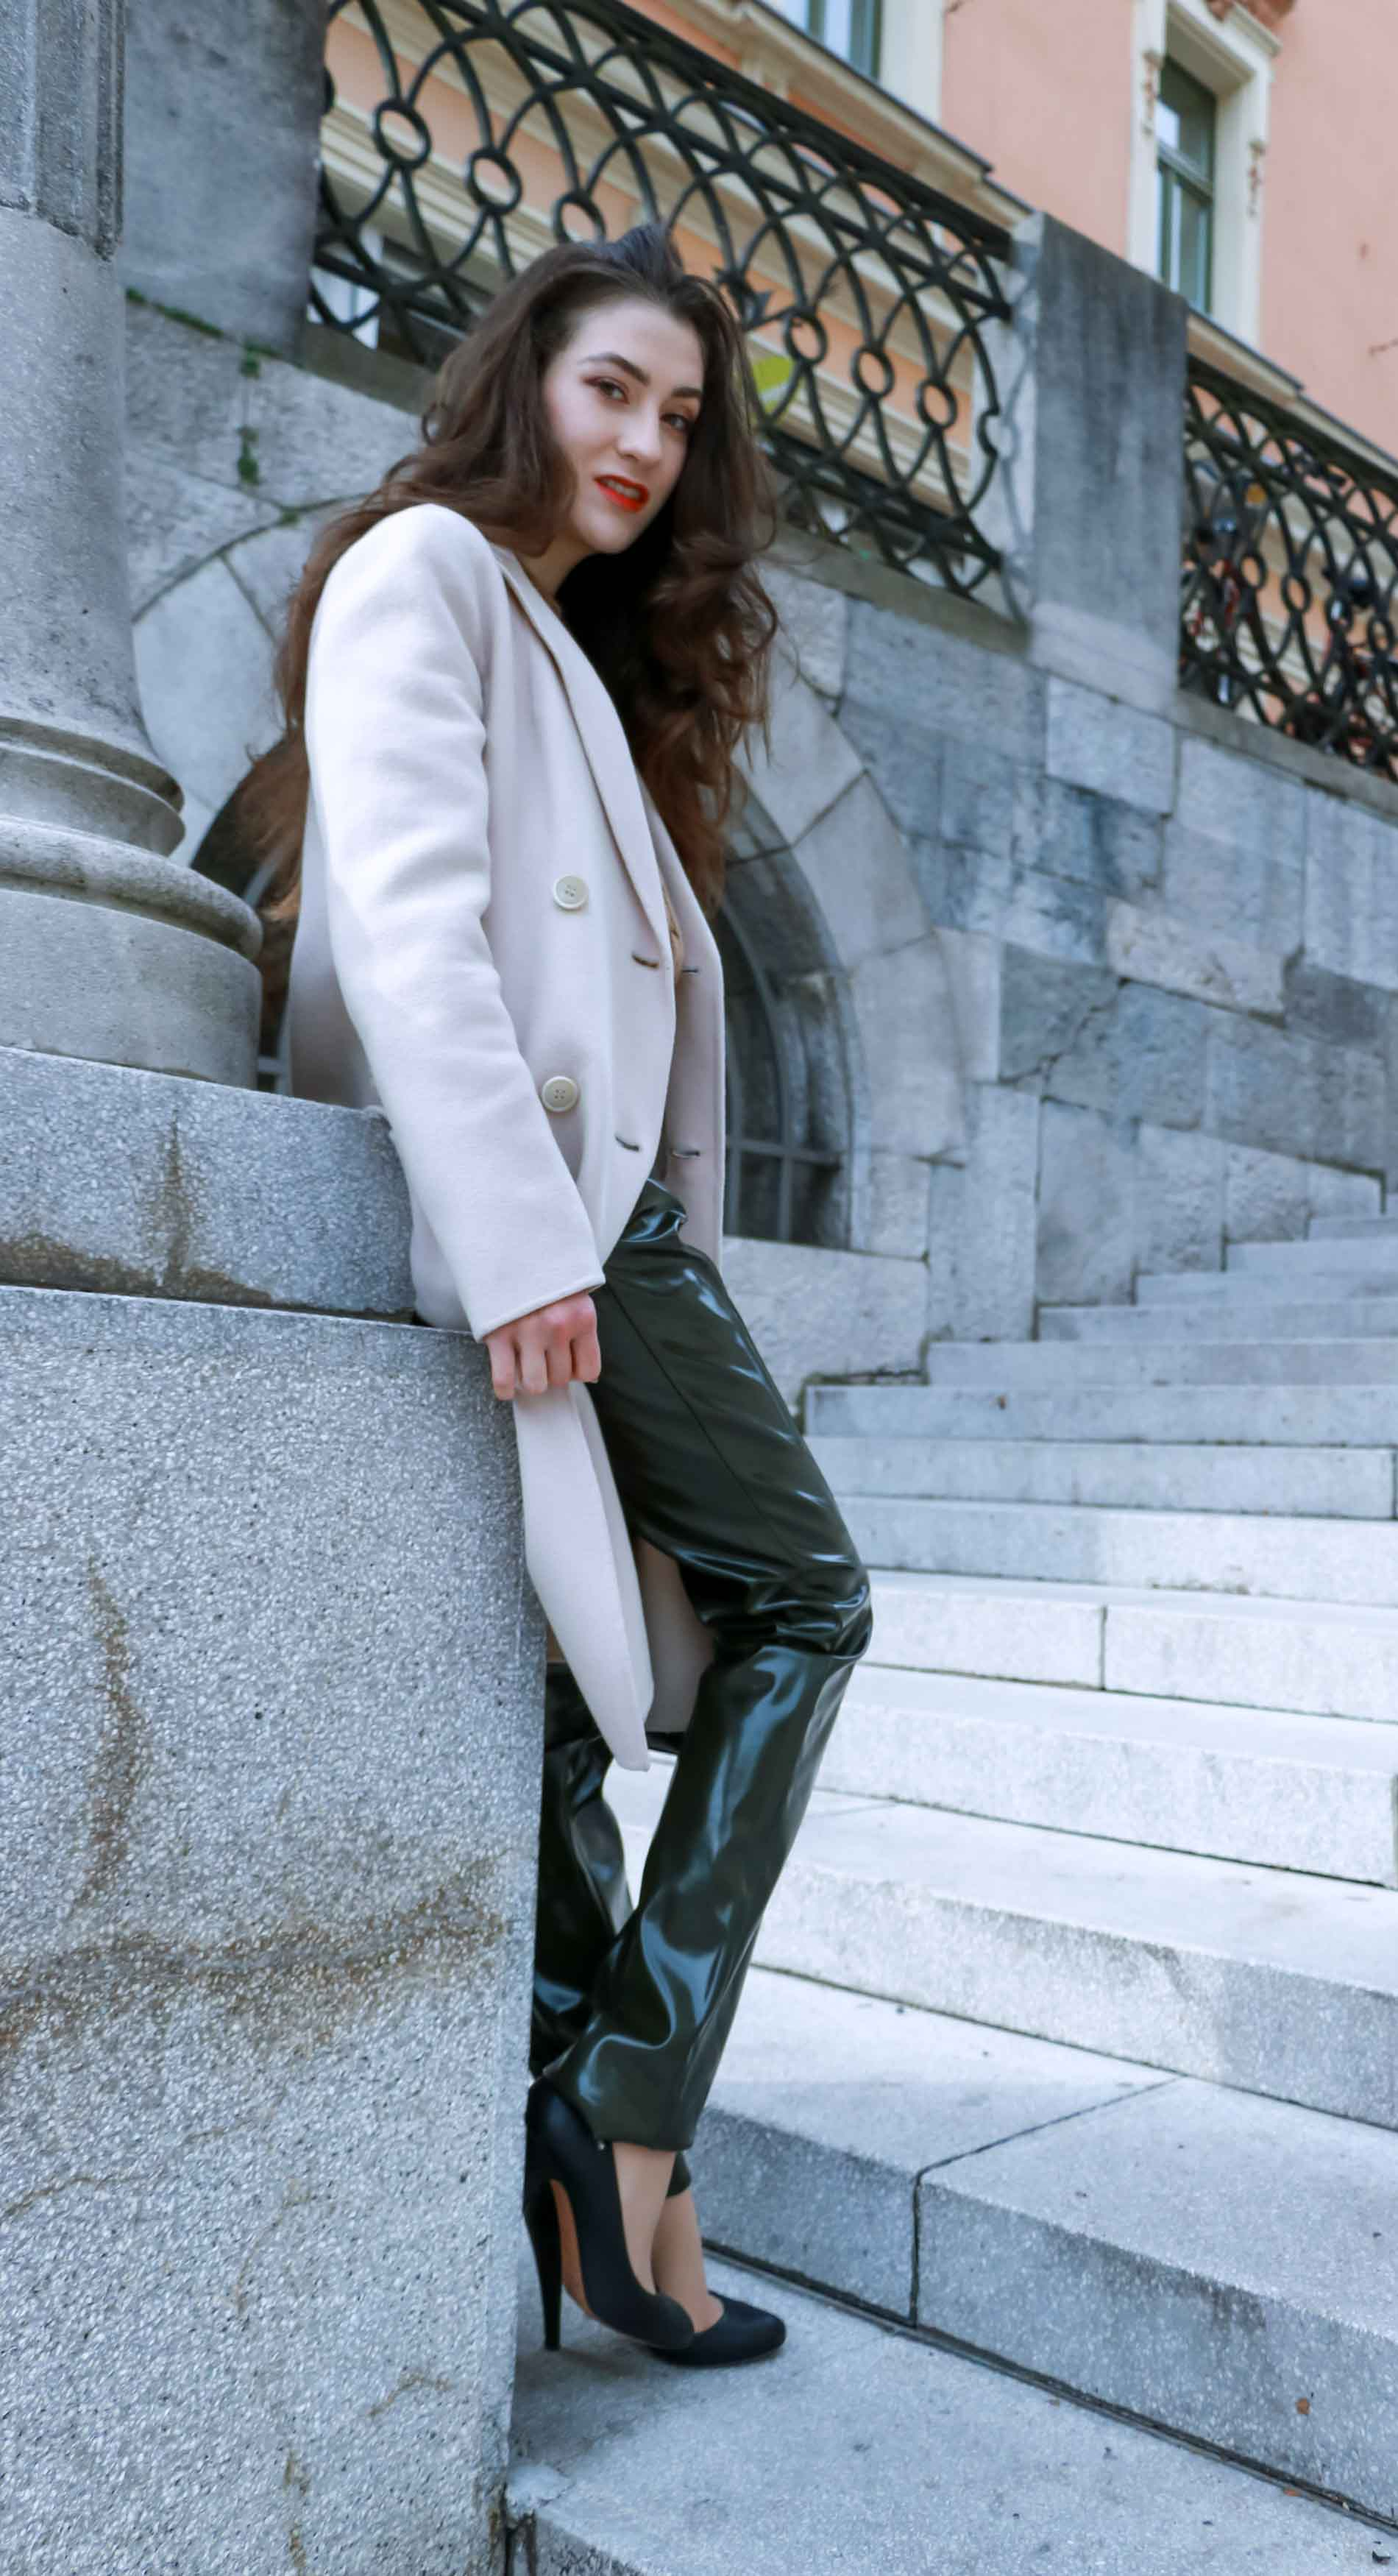 Fashion Blogger Veronika Lipar of Brunette from Wall Street wearing chic winter business outfit